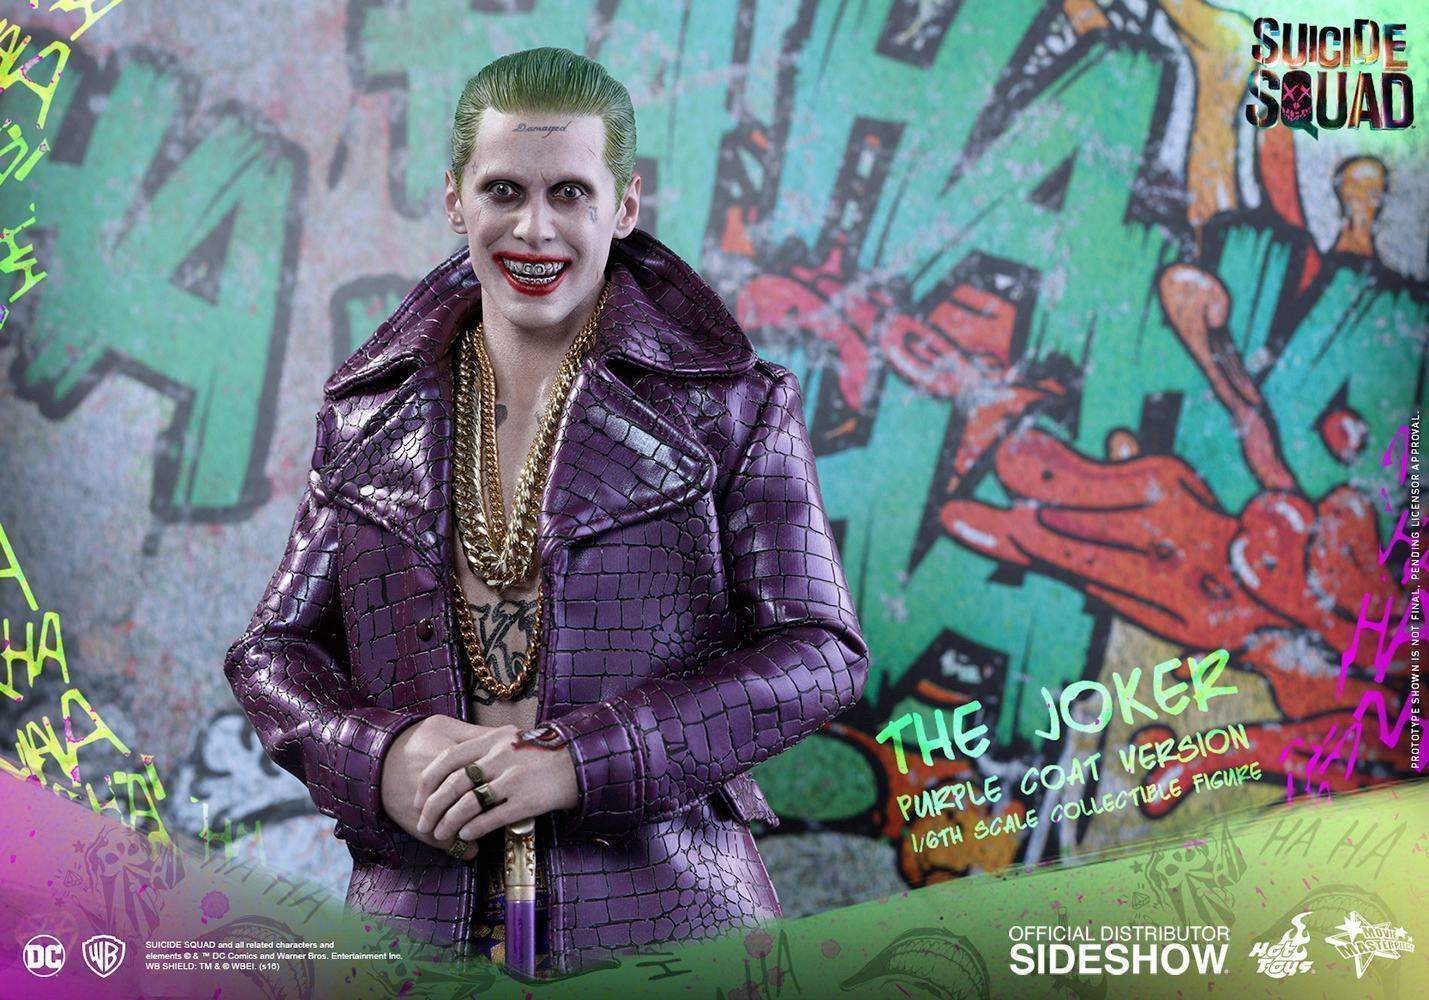 The-Joker-Purple-Coat-Ver-Suicide-Squad-Collectible-Figure-Hot-Toys-07